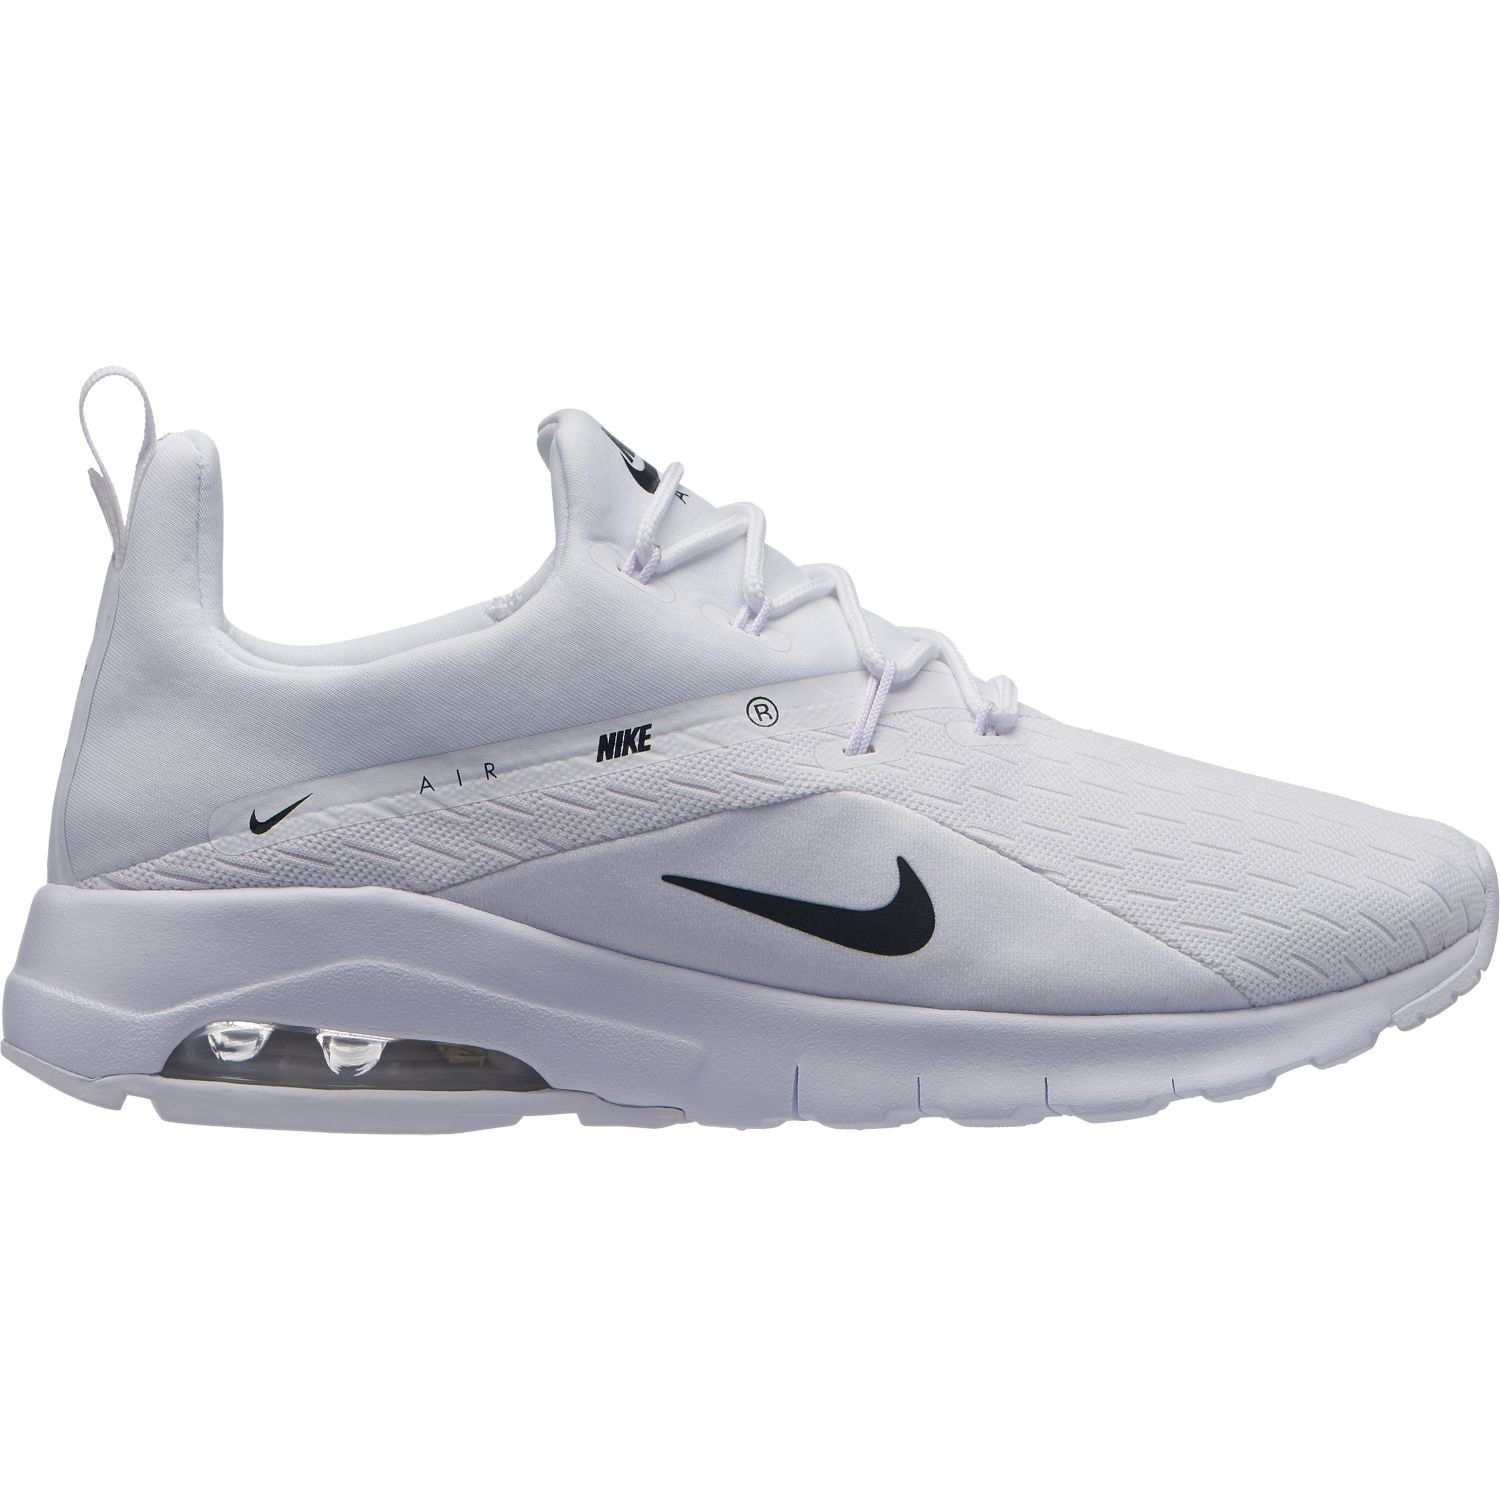 a7a024740f Nike Air Max Motion Racer 2 - Women Casual Shoes - White Black ...